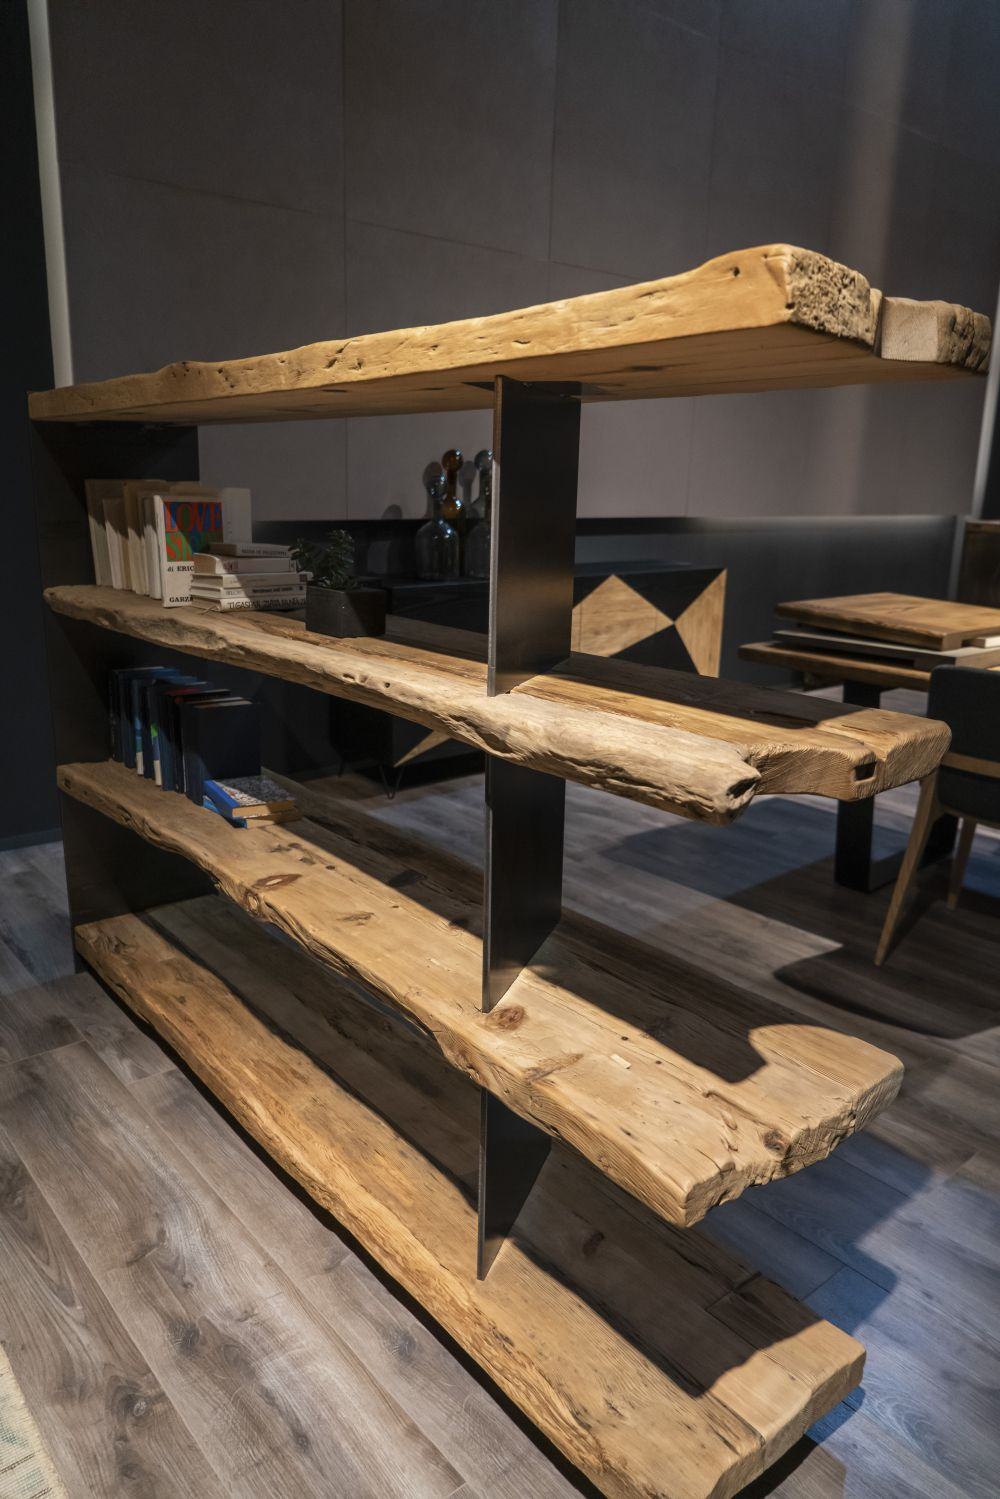 Old wooden planks make a shelving unit with character.